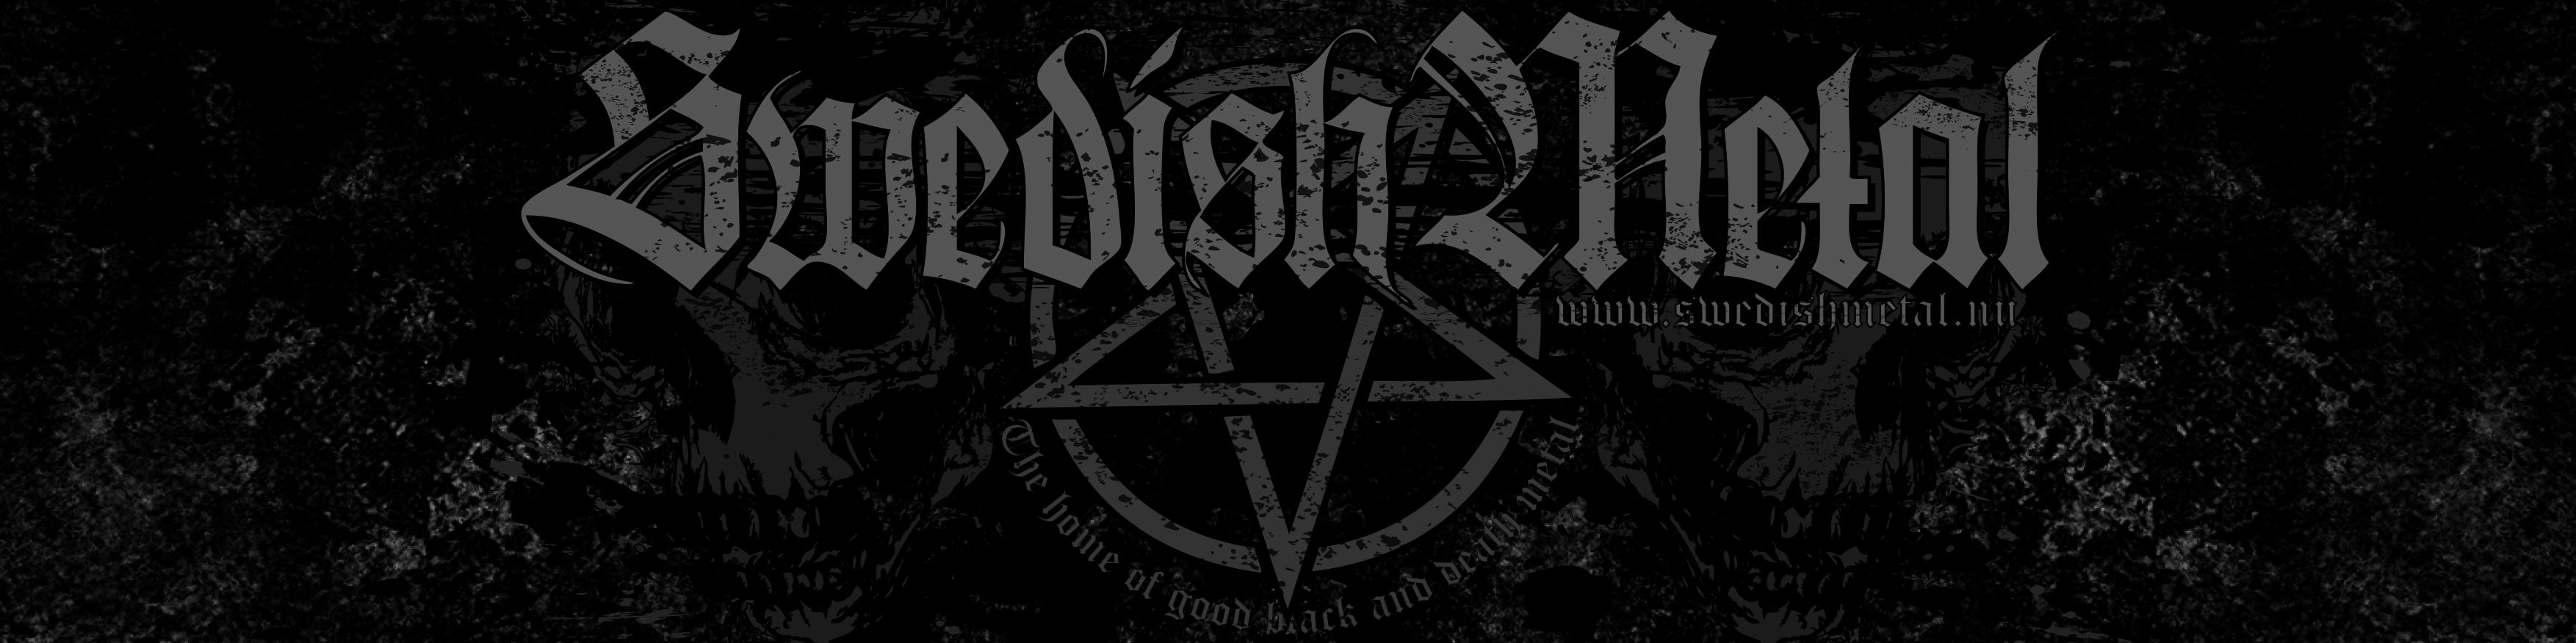 Swedish Metal – The home of good black metal and death metal